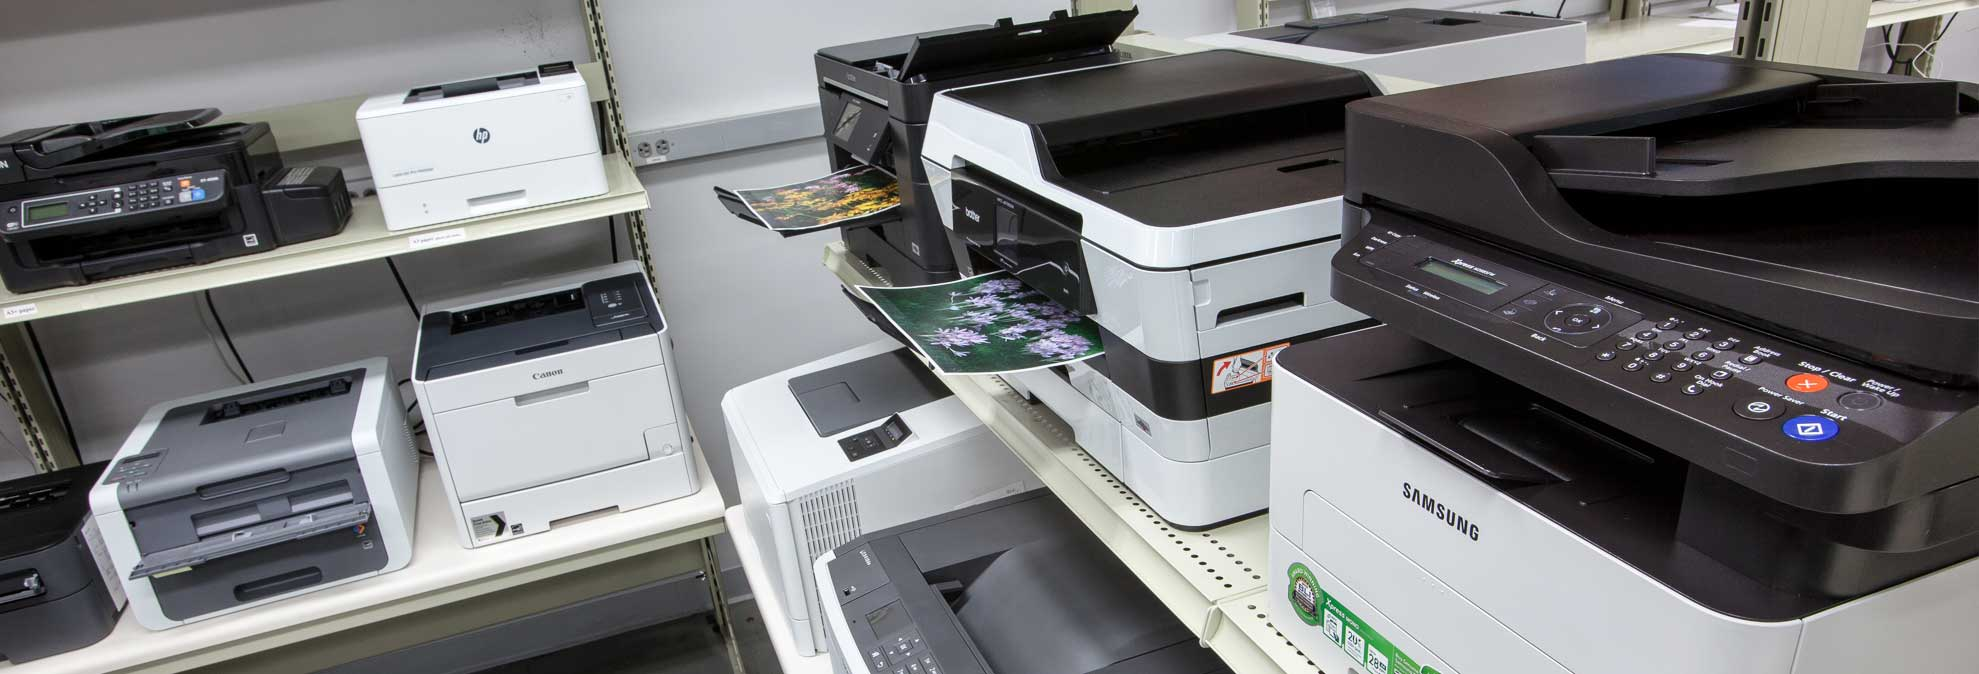 Best printers to buy right now consumer reports for Best buy photo printing